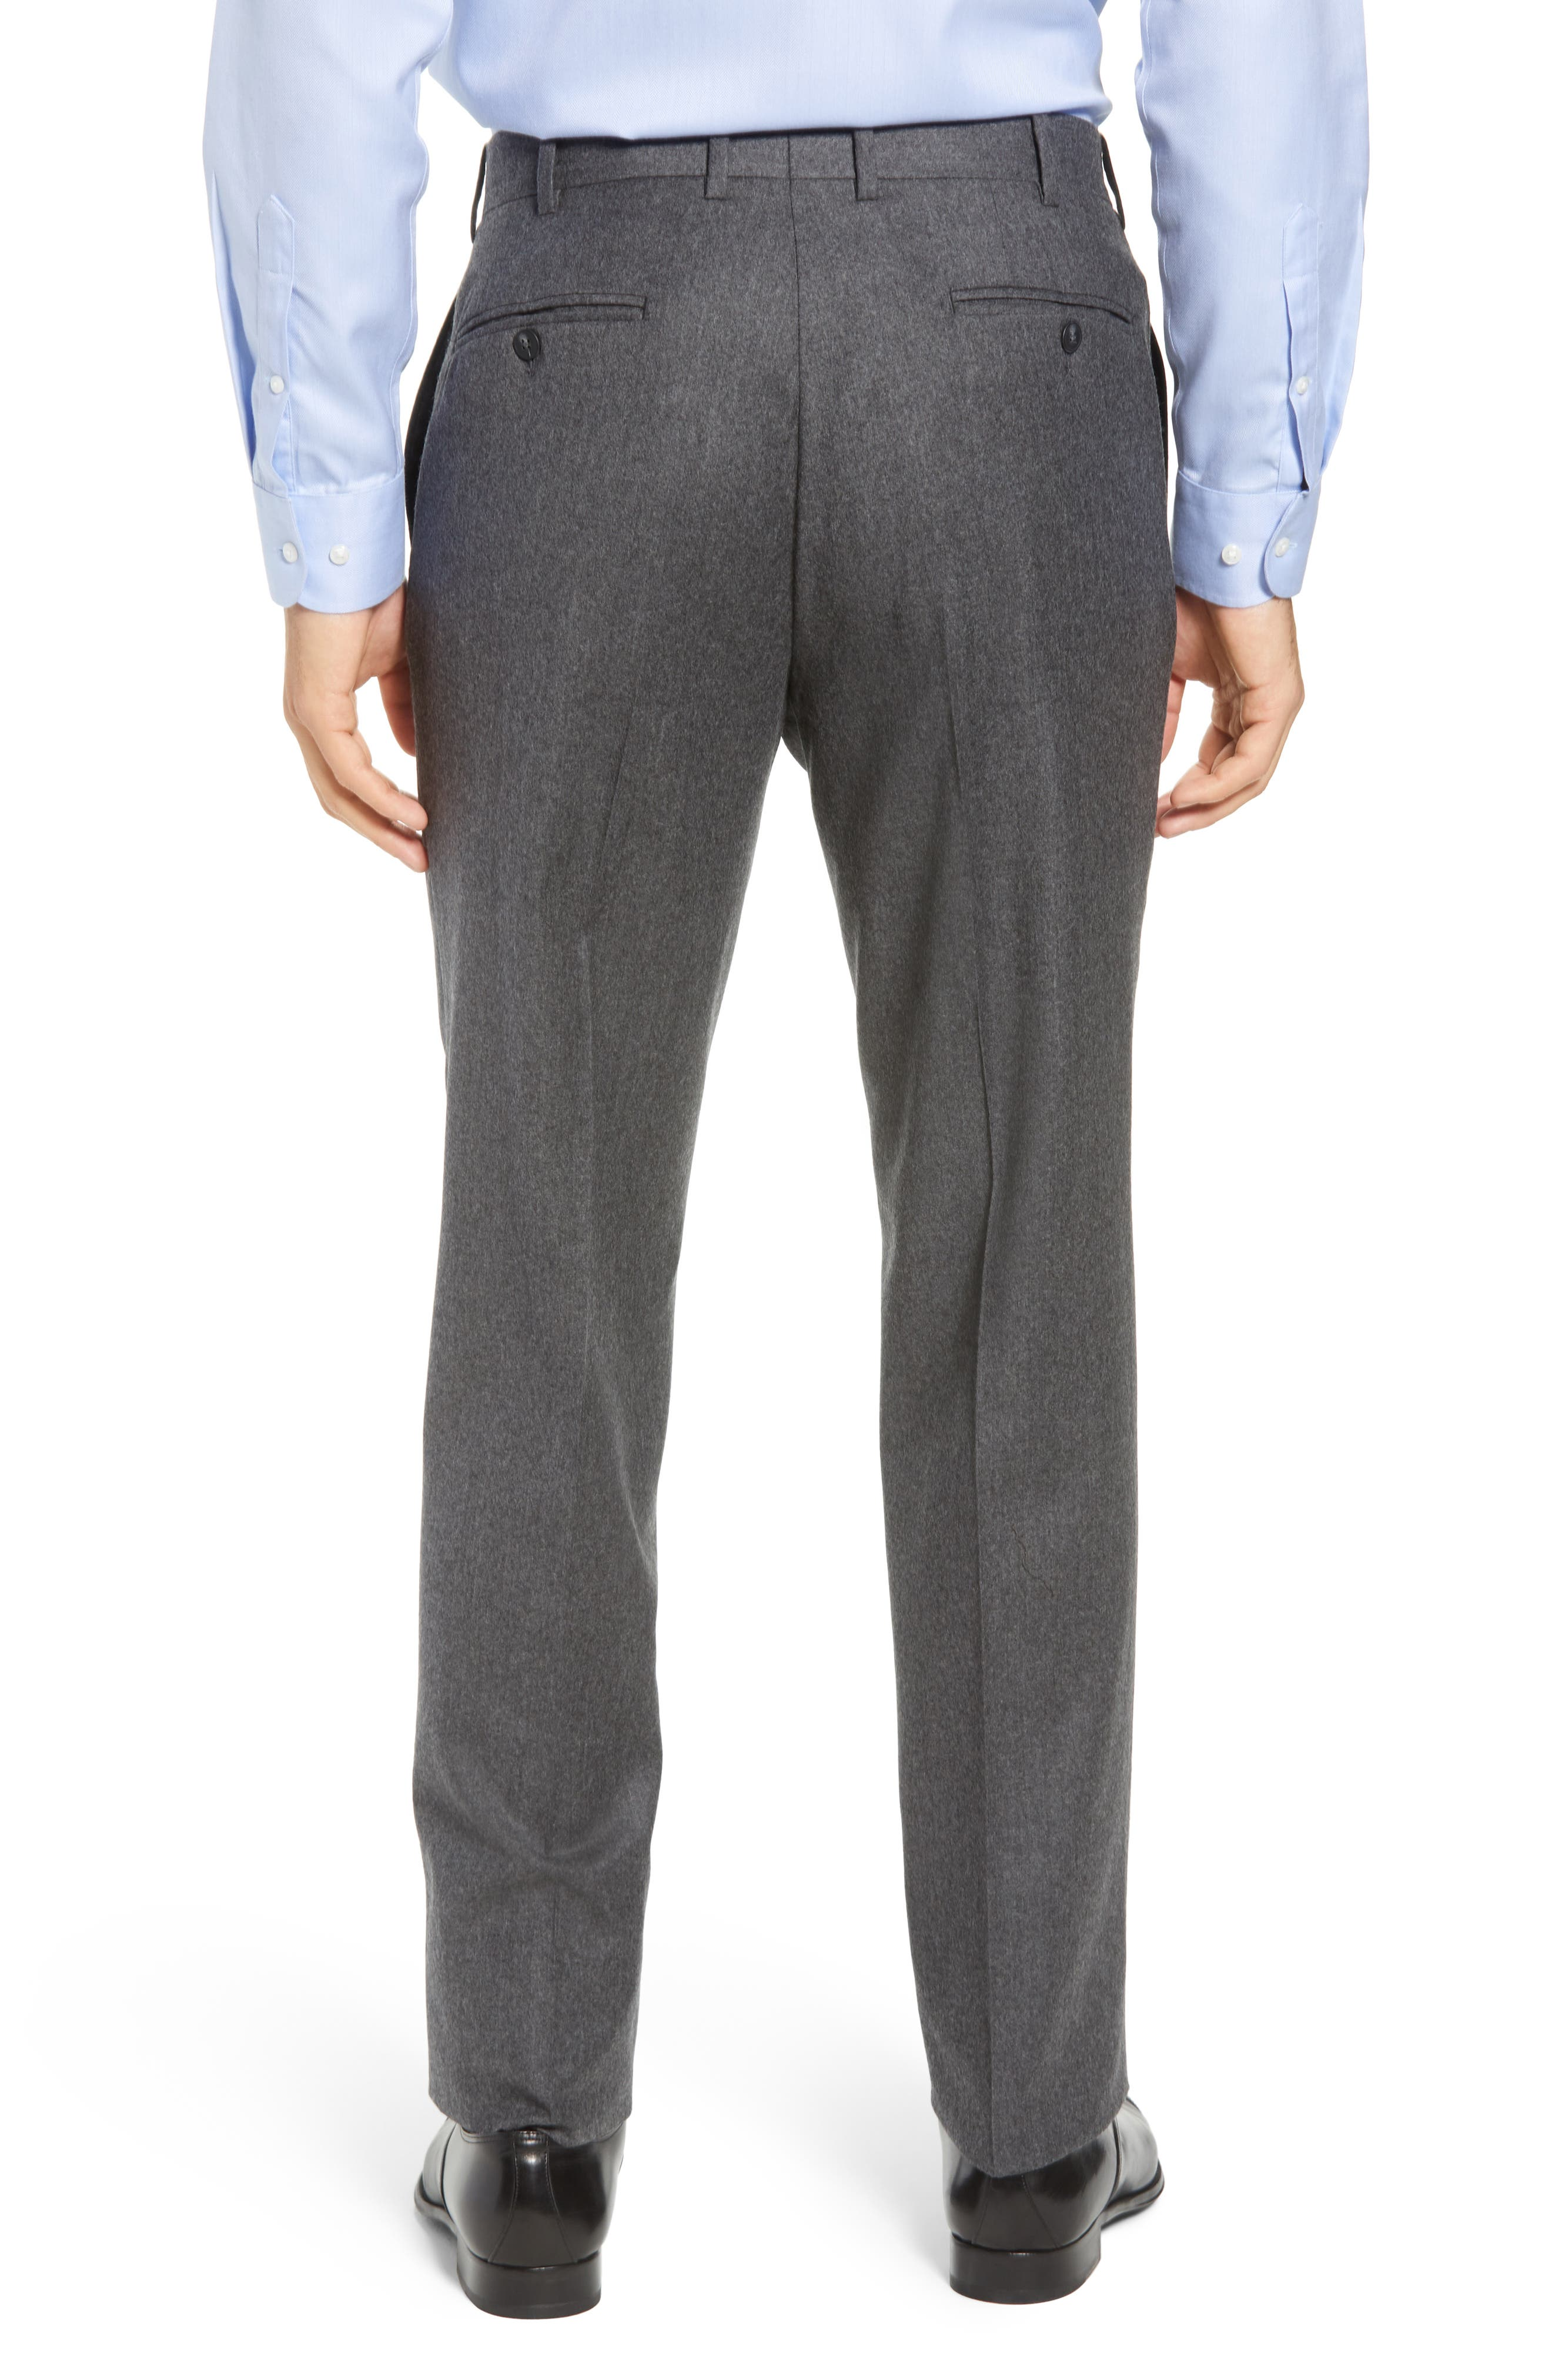 Torino Traditional Fit Flat Front Solid Wool & Cashmere Trousers,                             Alternate thumbnail 2, color,                             MID GREY